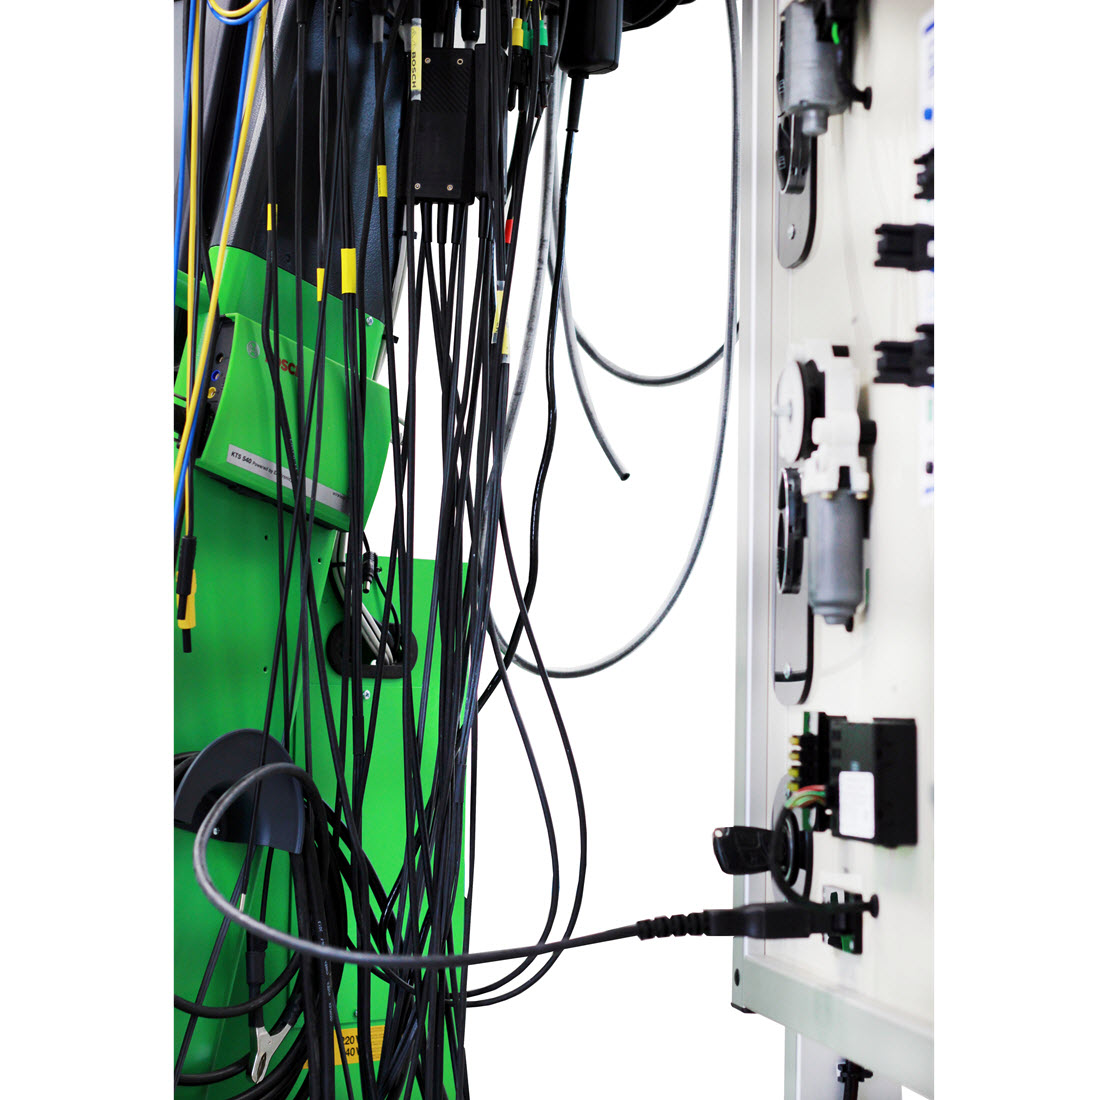 Basic Electrical Wiring Training Boards Schematic Diagrams Residential Simulator Can Bus Board For Sale Ryansautomotive Ie Home